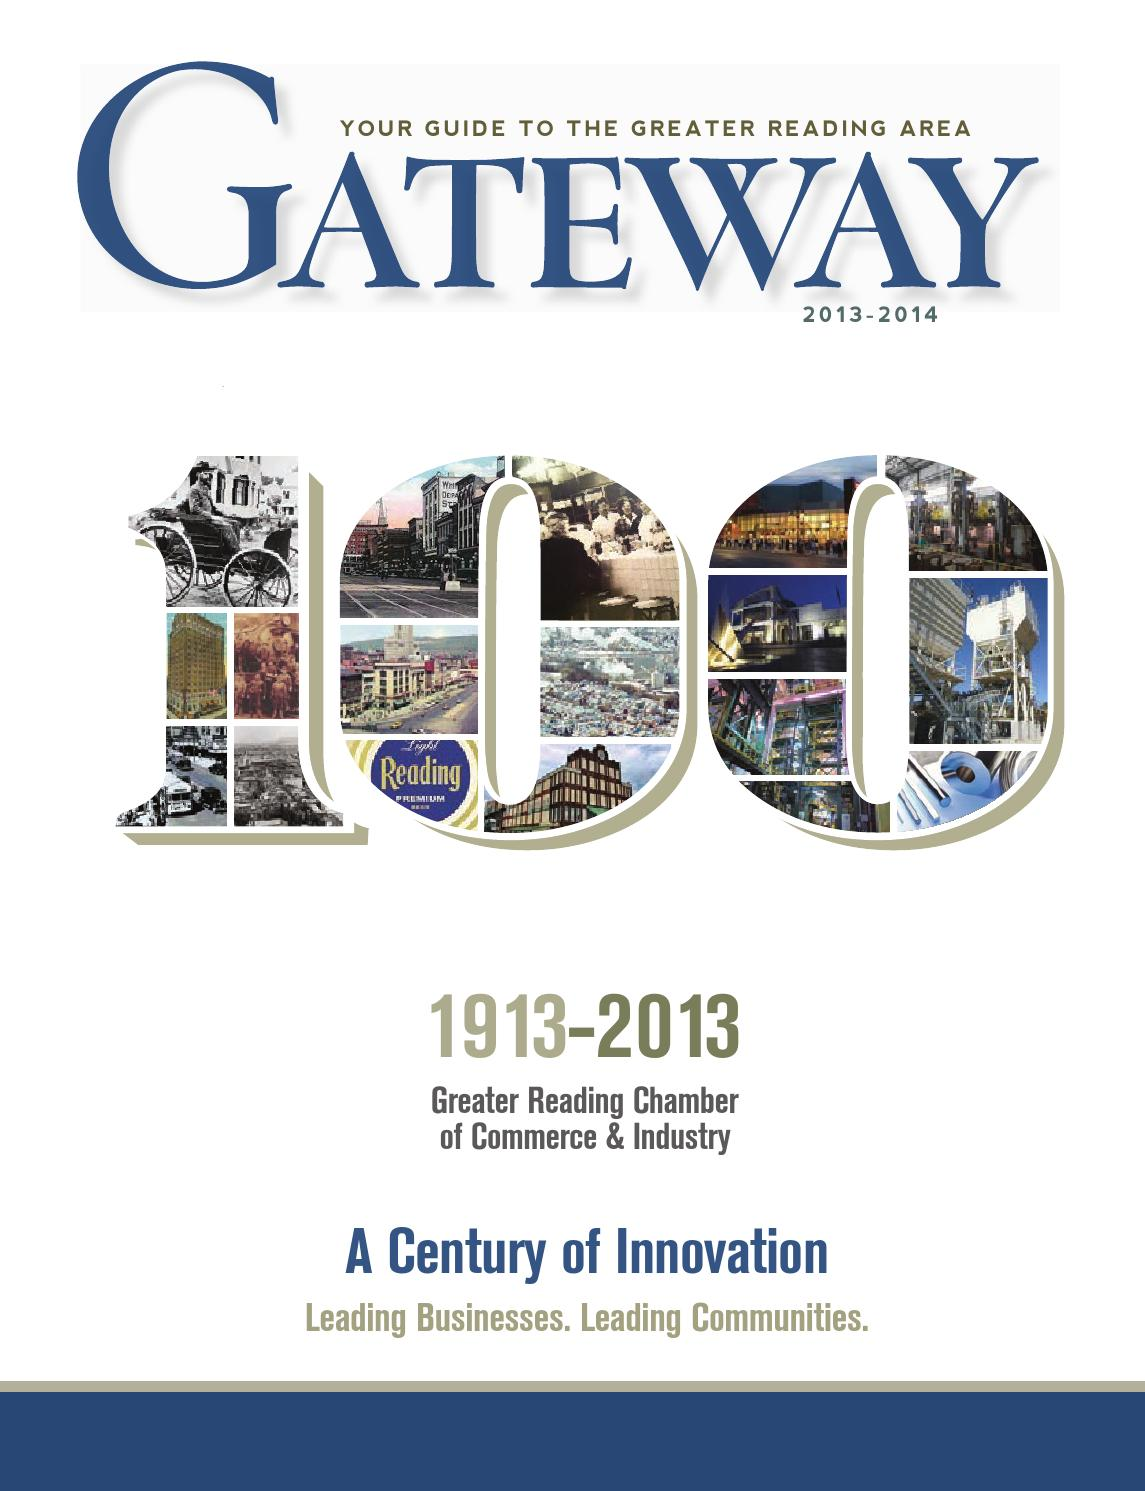 Greater Reading Chamber of Commerce & Industry Gateway (2013